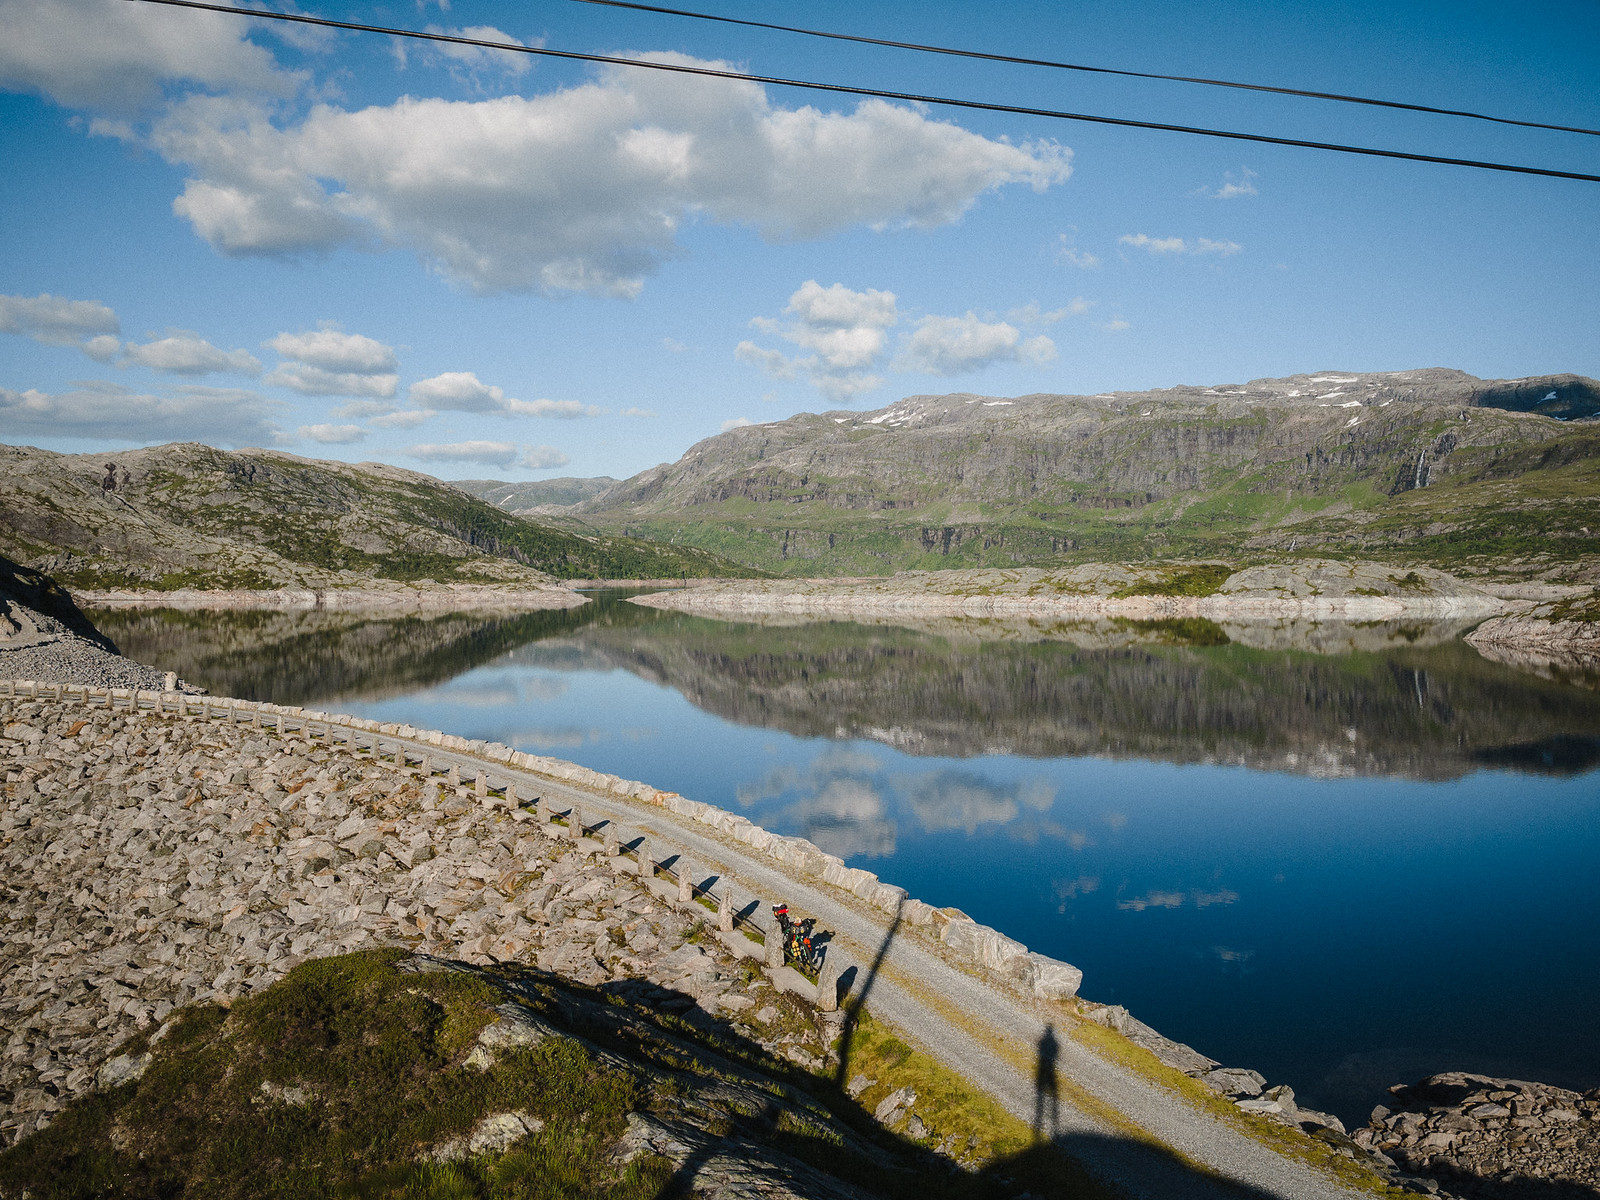 Dam, reservoir and distant mountains. Bicycle and a man's shadow on the road over the dam.